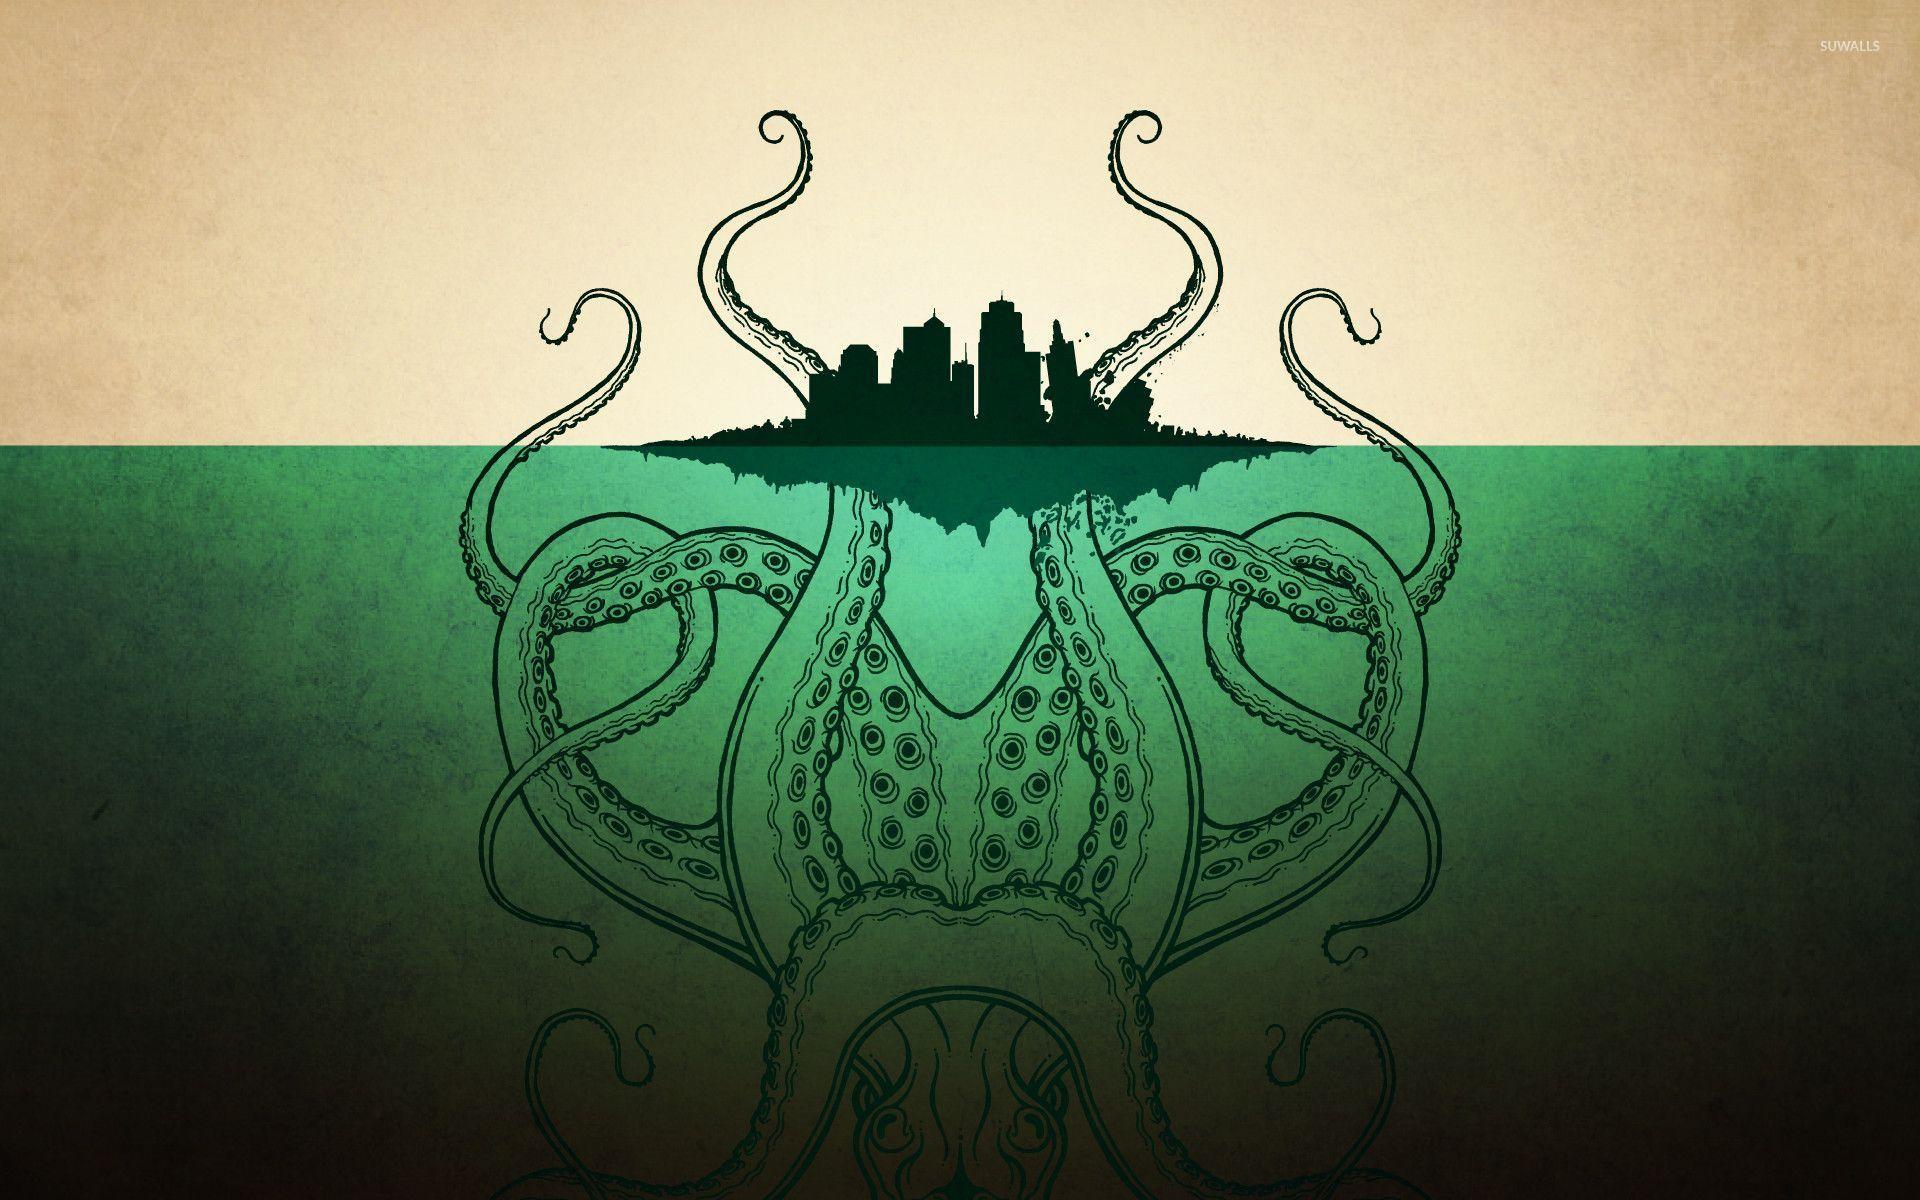 Giant Octopus Against The City Wallpaper